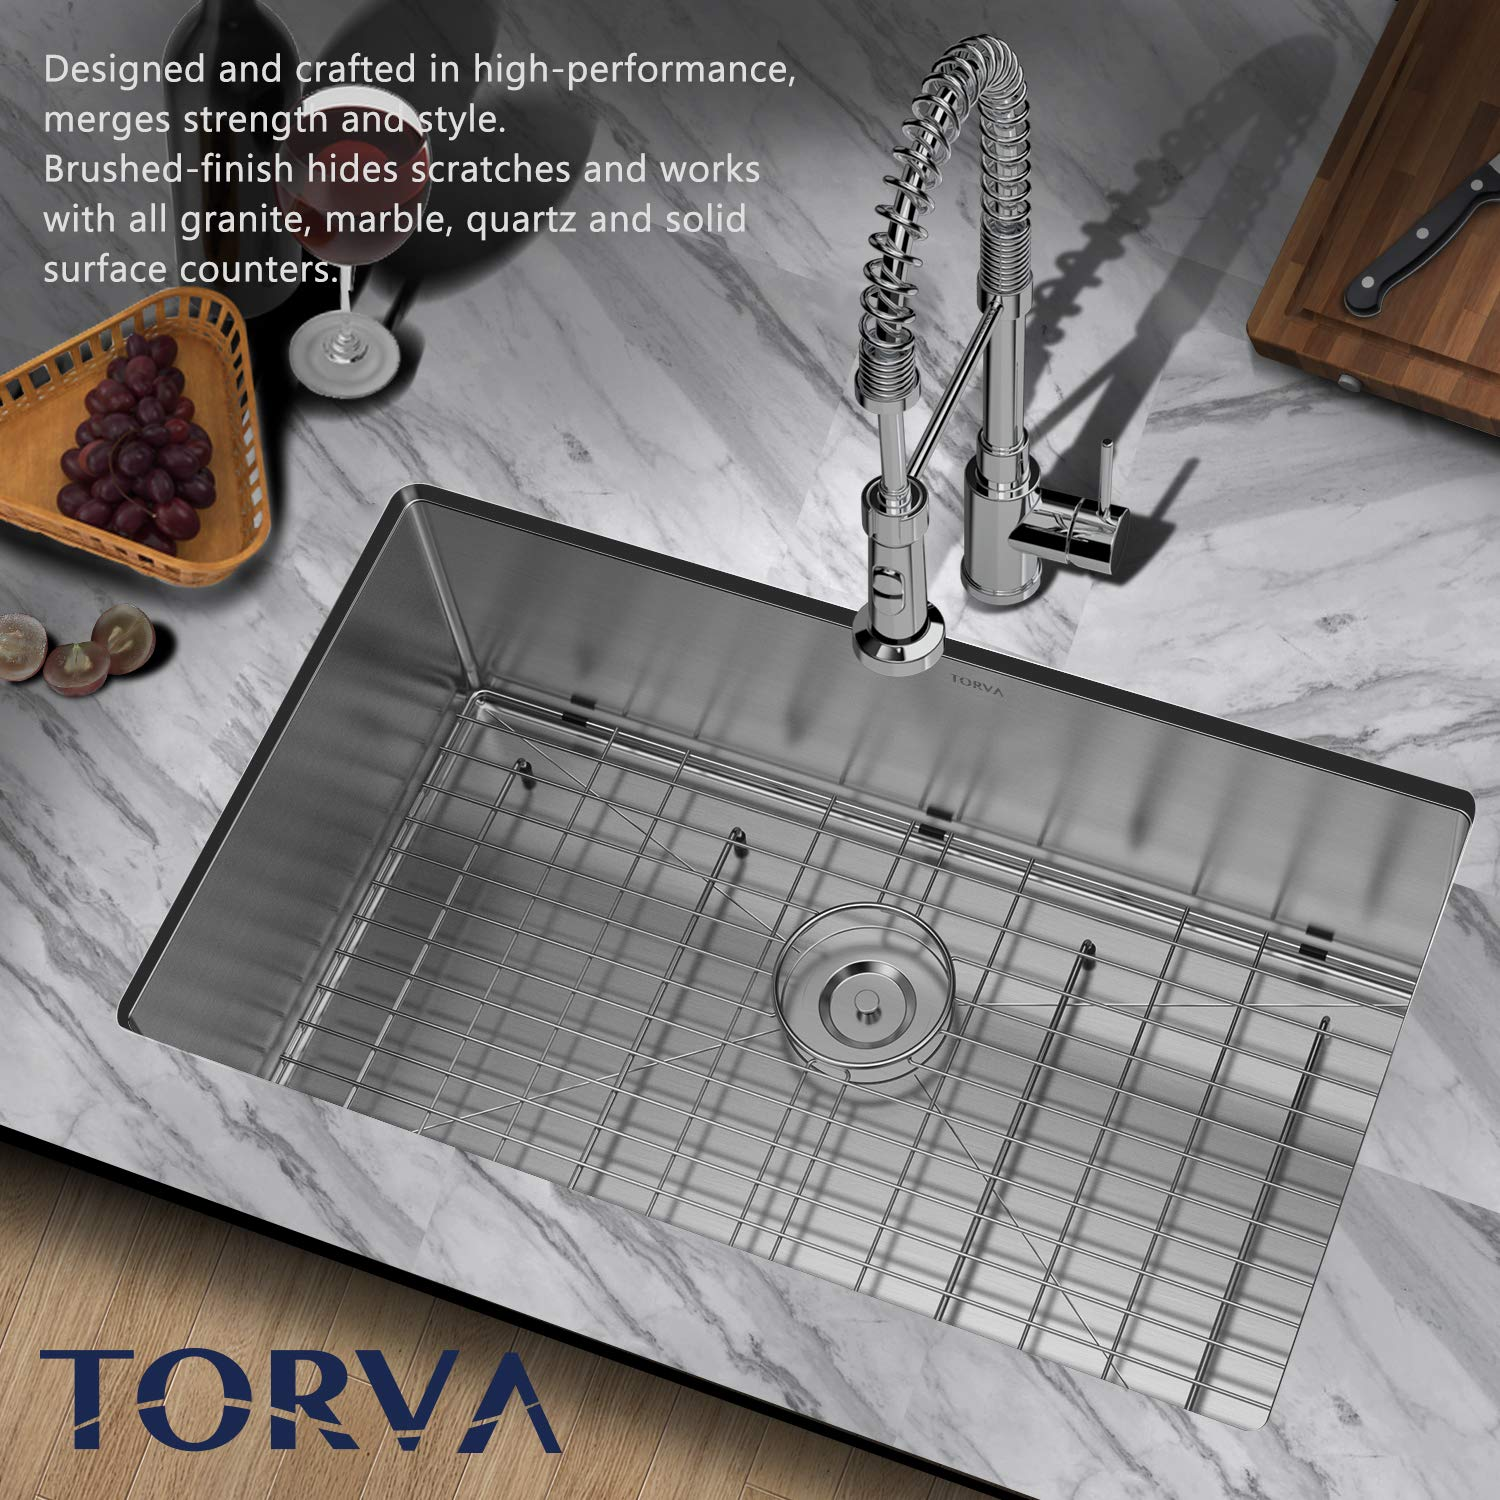 TORVA 30 Inch 16 Gauge Stainless Steel Undermount Kitchen Sink Single Bowl 10'' Deep by TORVA (Image #2)